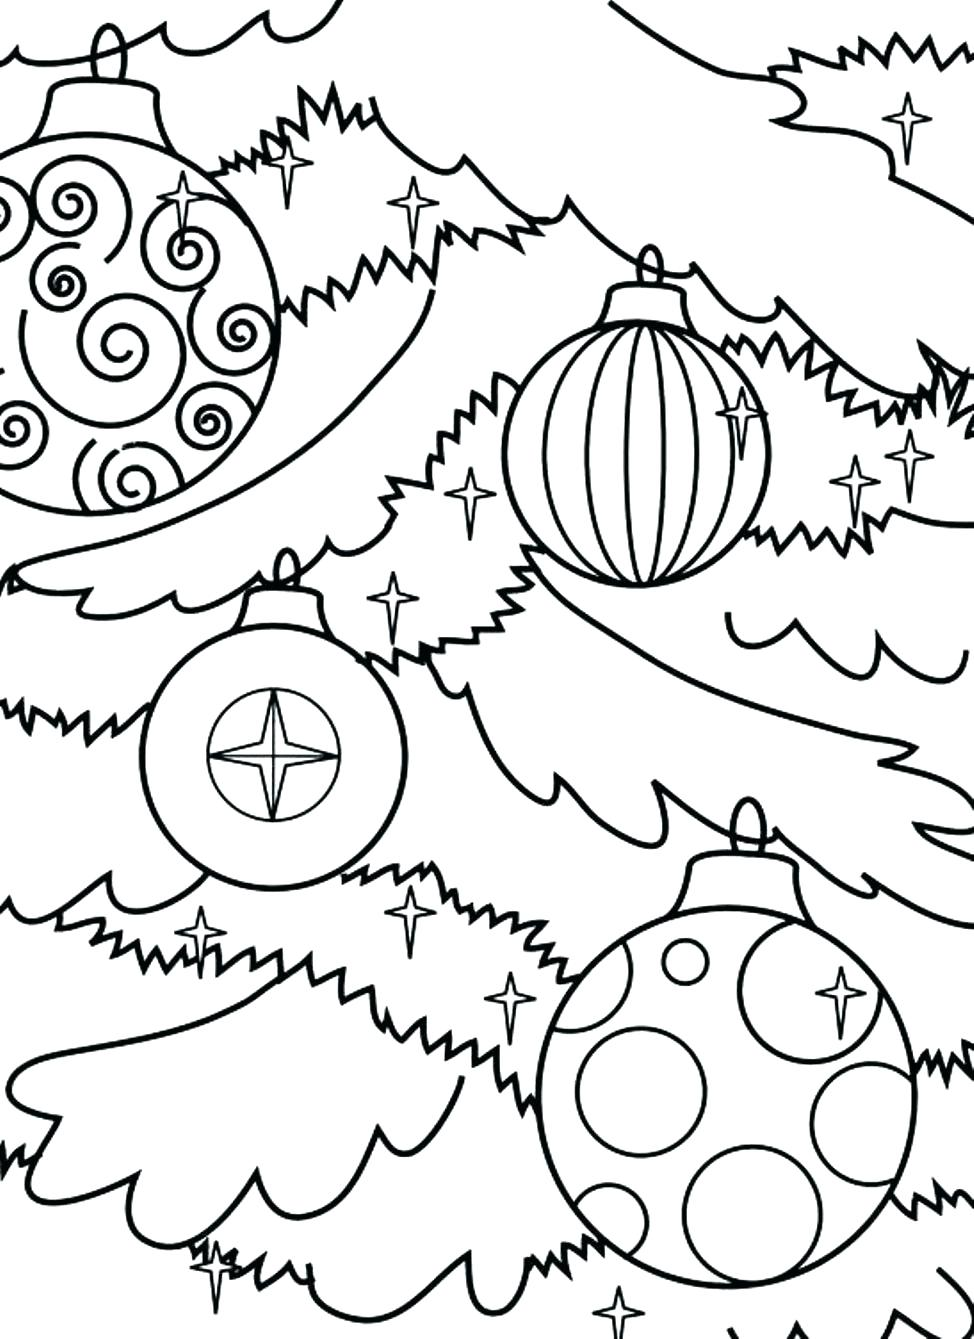 Xmas Ornaments Coloring Pages With Collection Of Christmas Tree Download